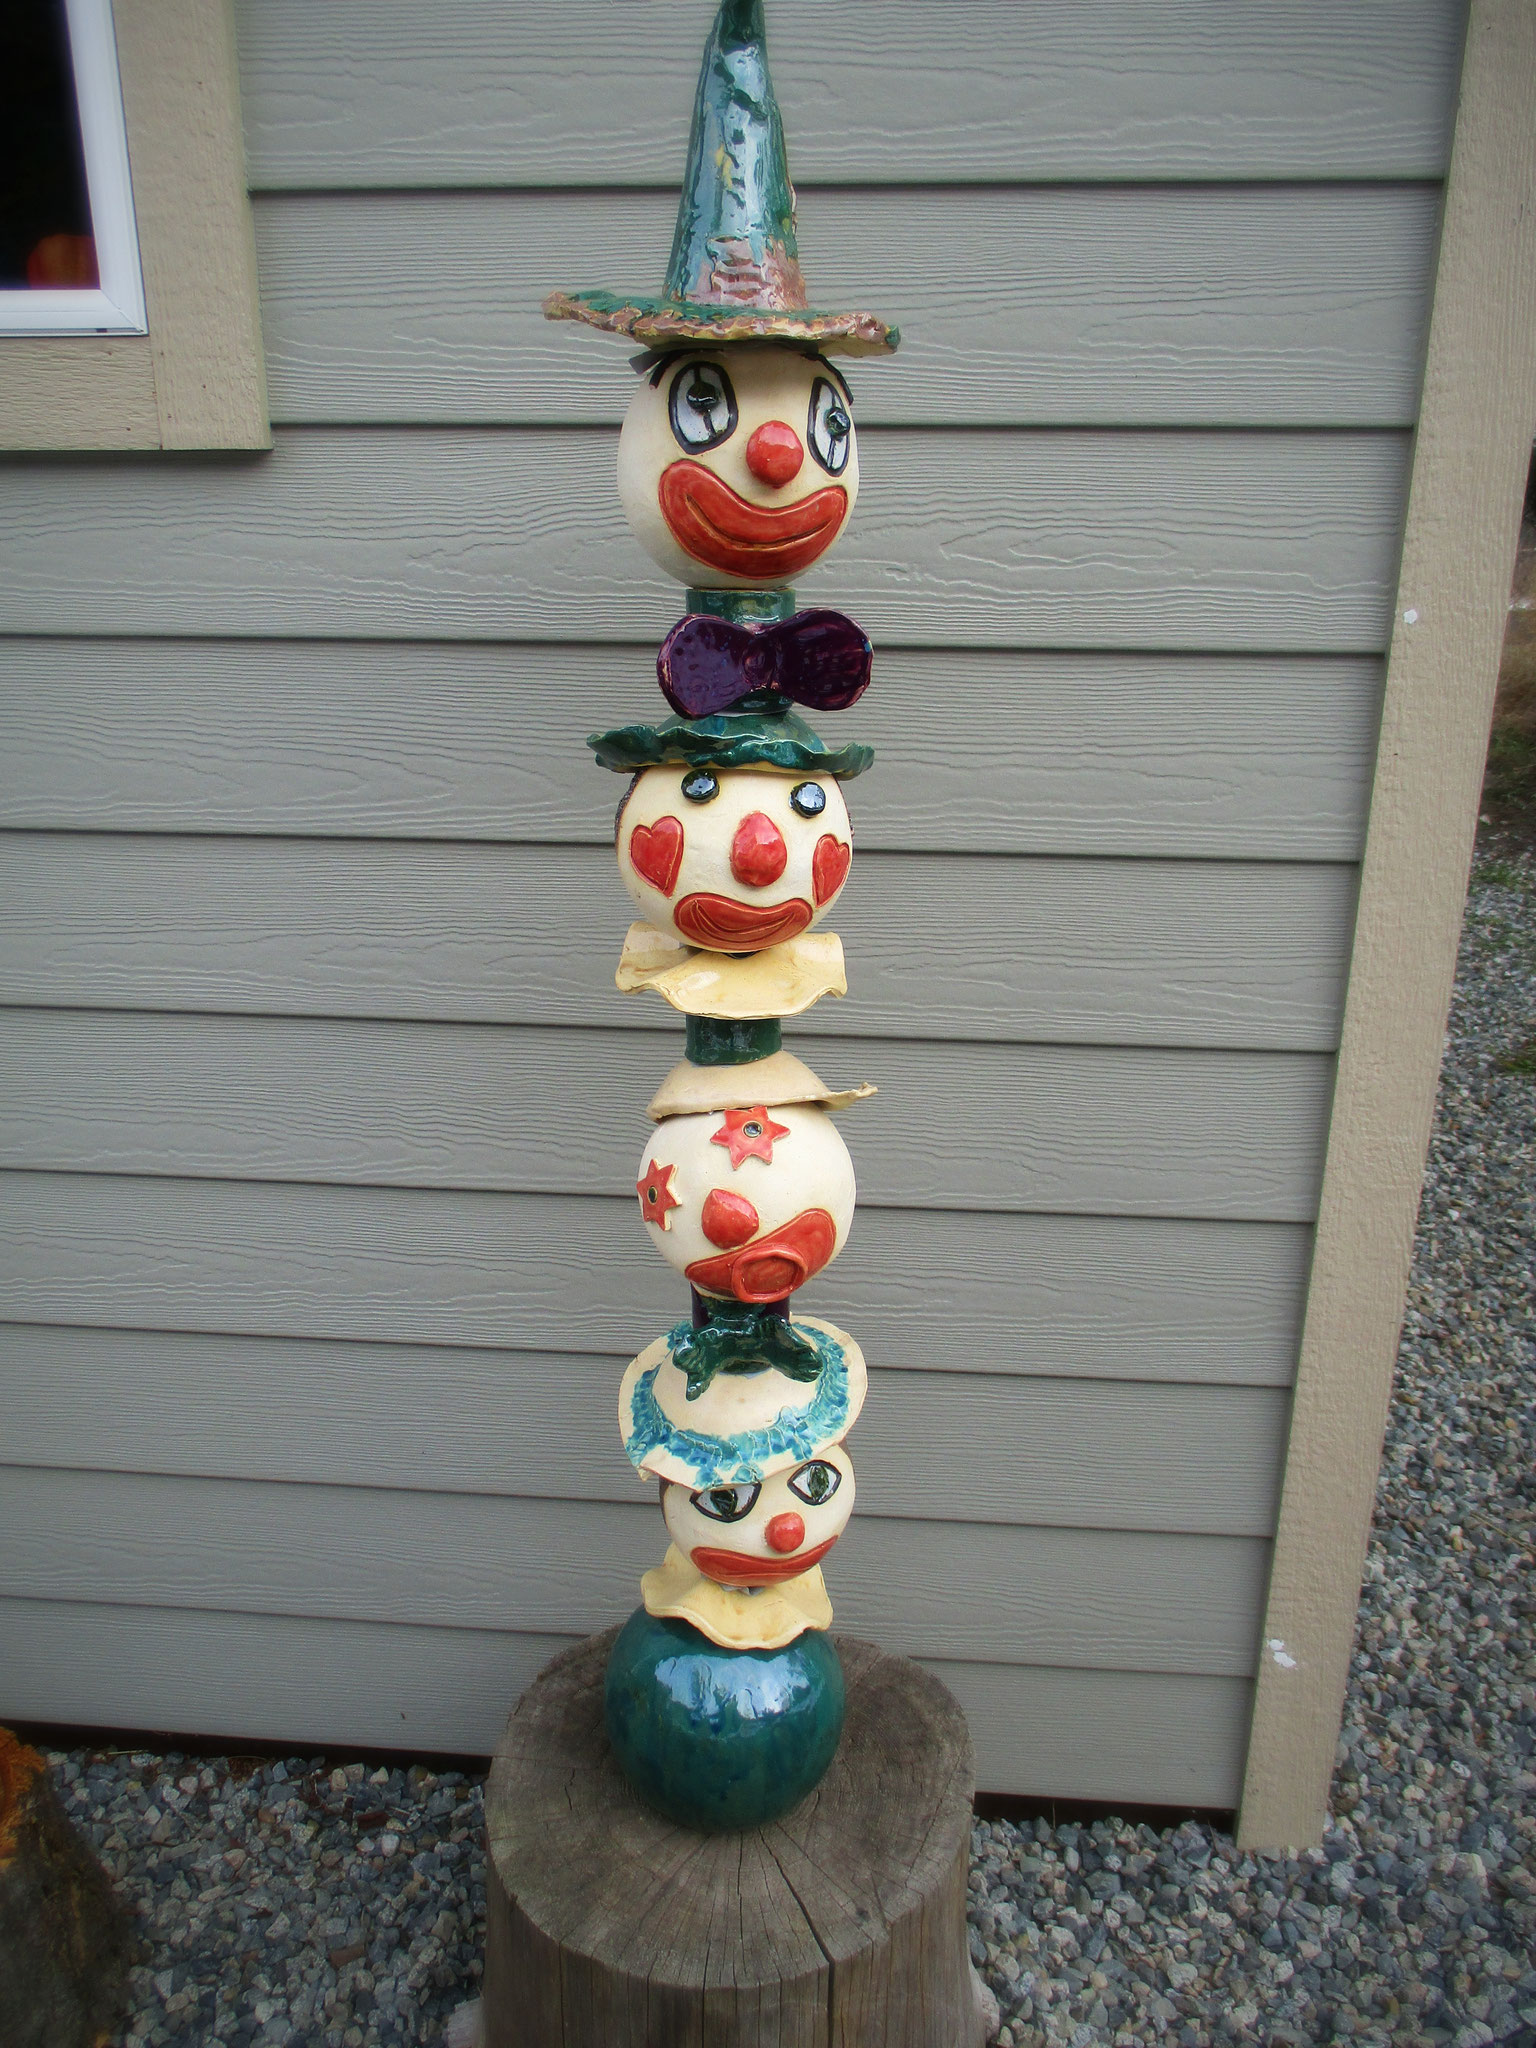 Clown Totem at the entrance